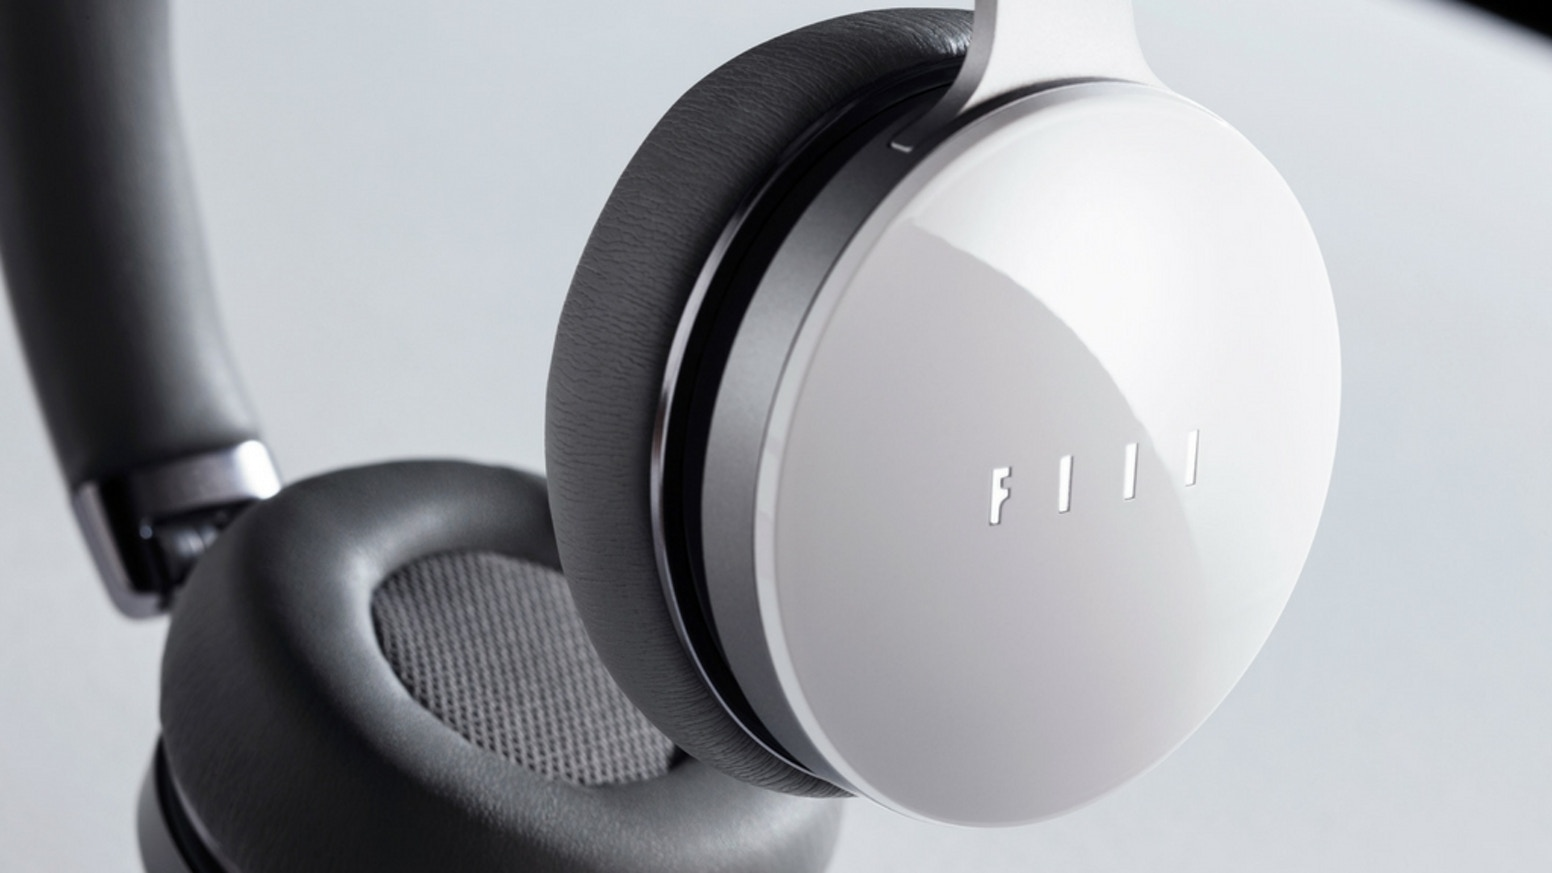 1f2b1f5dc8e The Only 3D Audio, Voice Search & Noise Canceling Headphones. Touch  control, motion sensors, patented MAF technology & music storage make FIIL  Diva Pro